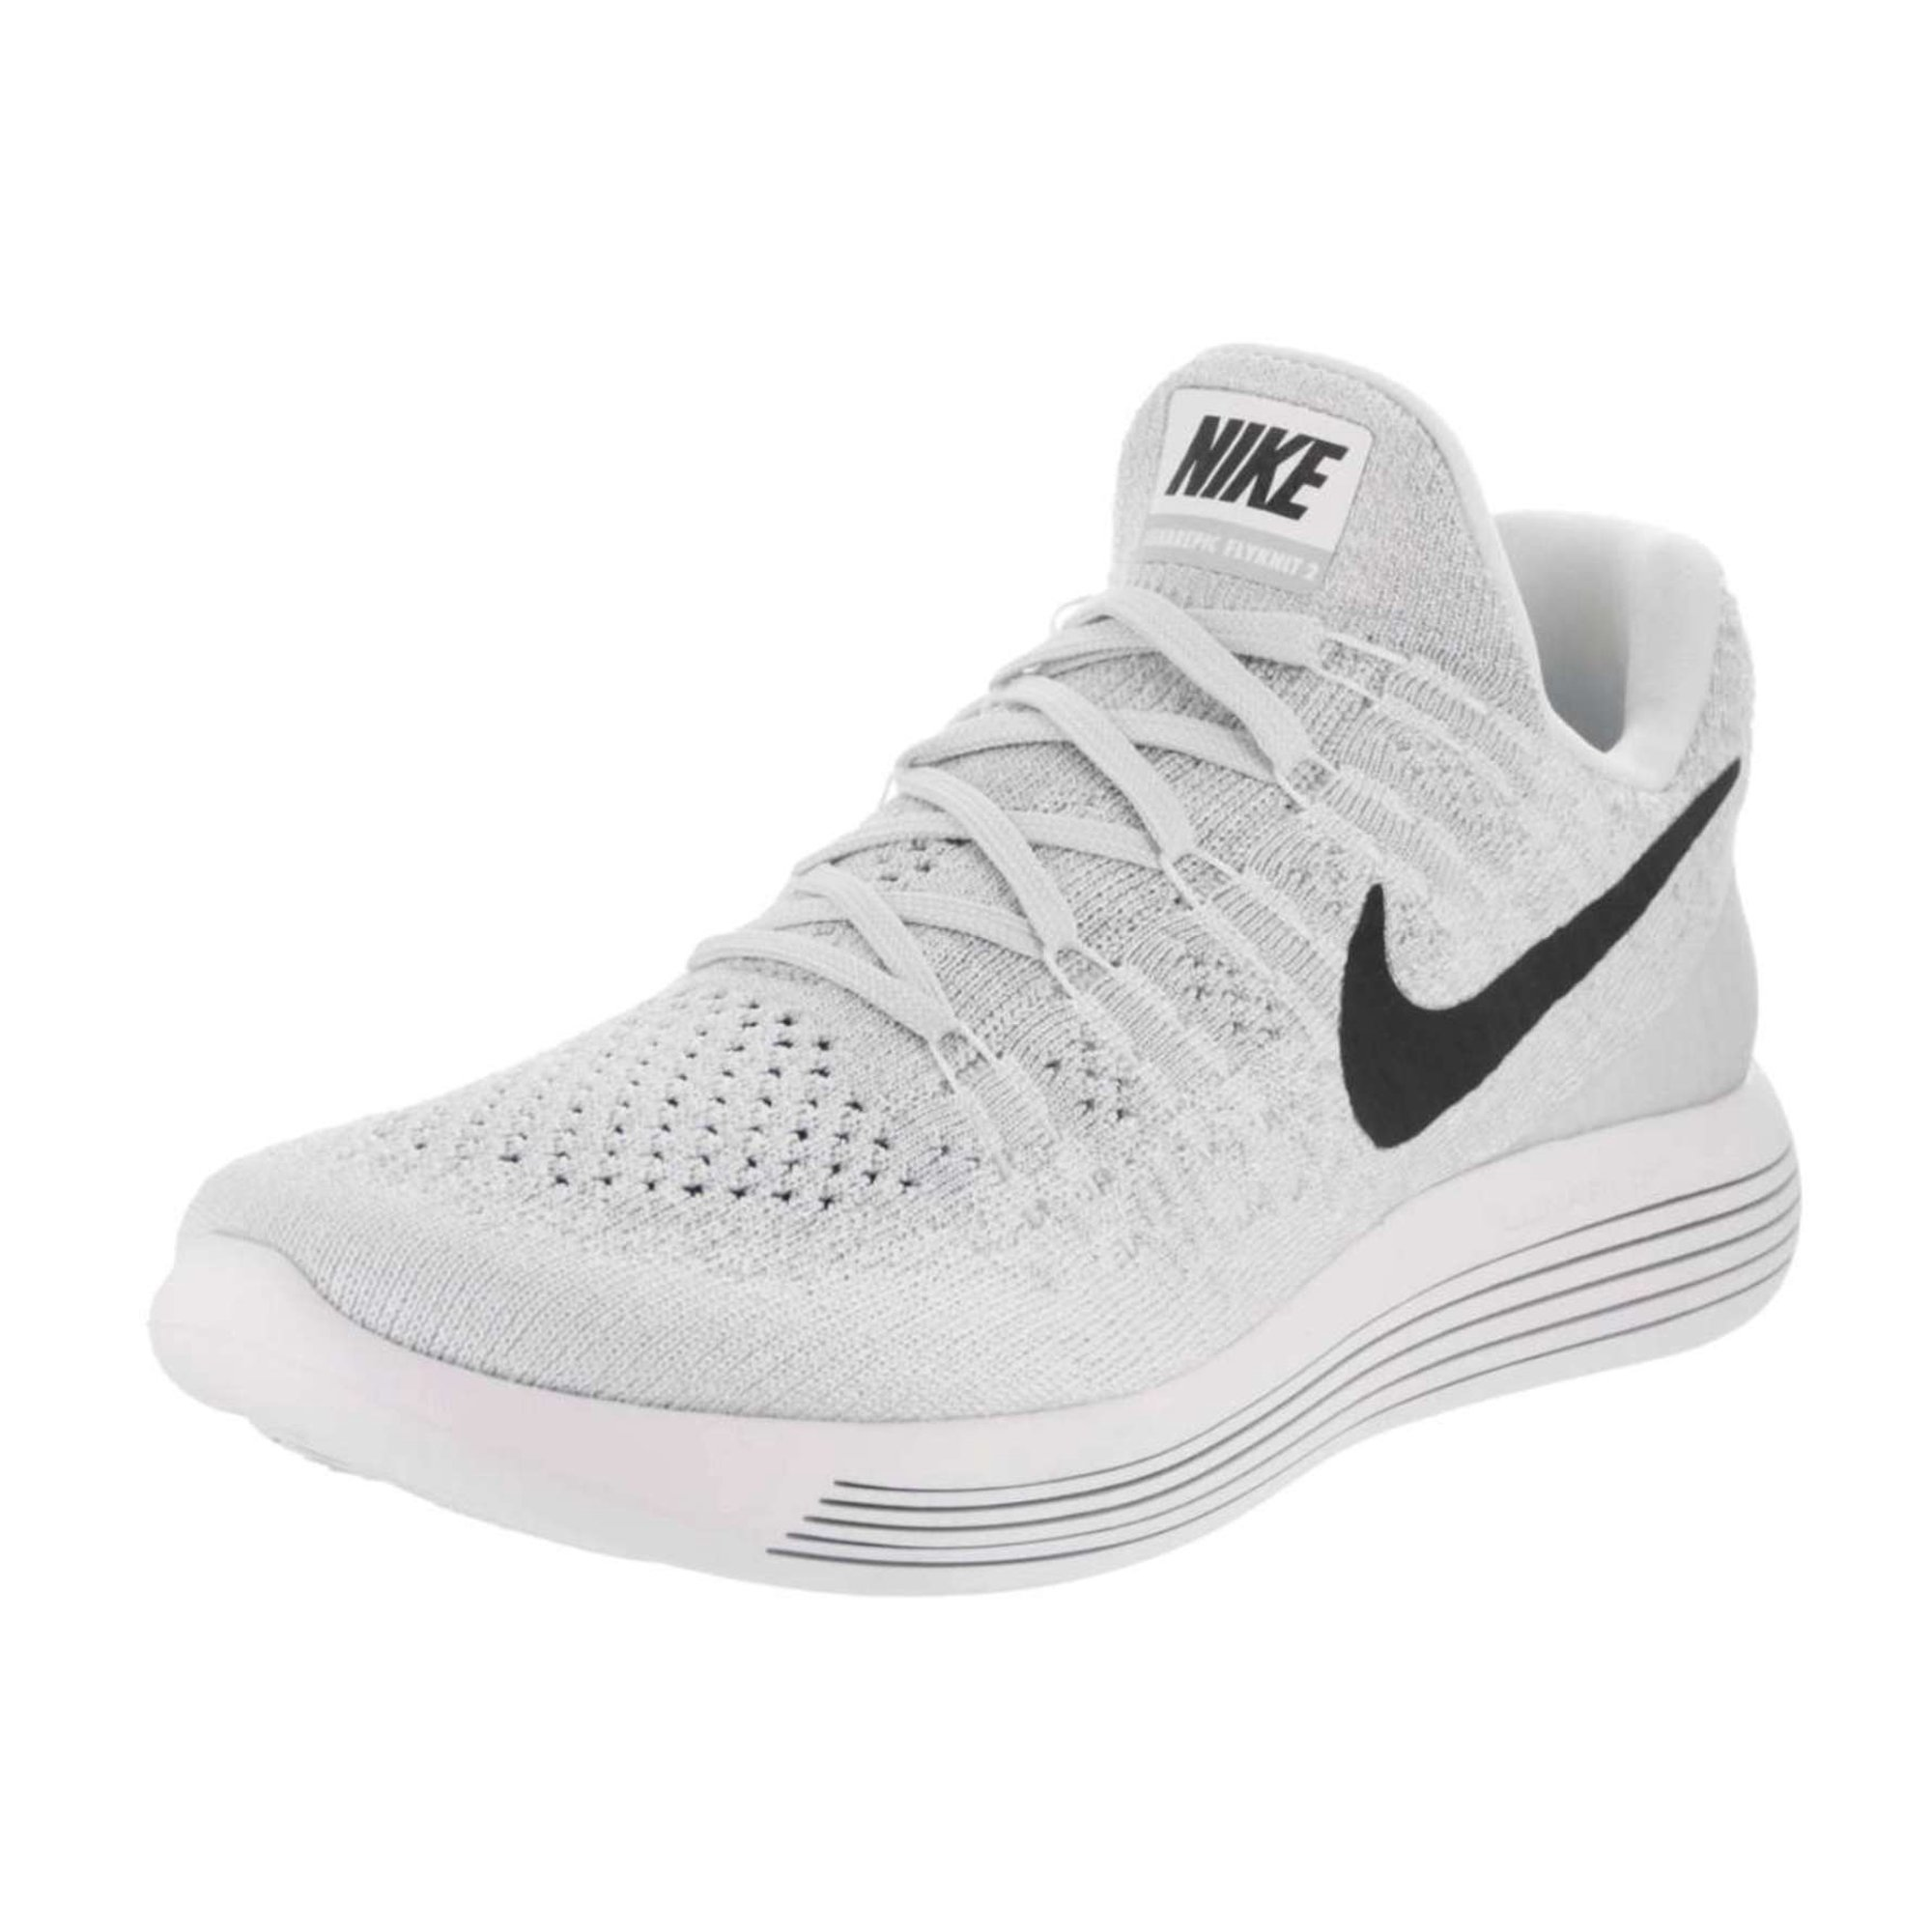 new styles 0f587 bf4ac Nike Mens Lunarepic Low Flyknit 2 Low Top | Walmart Canada